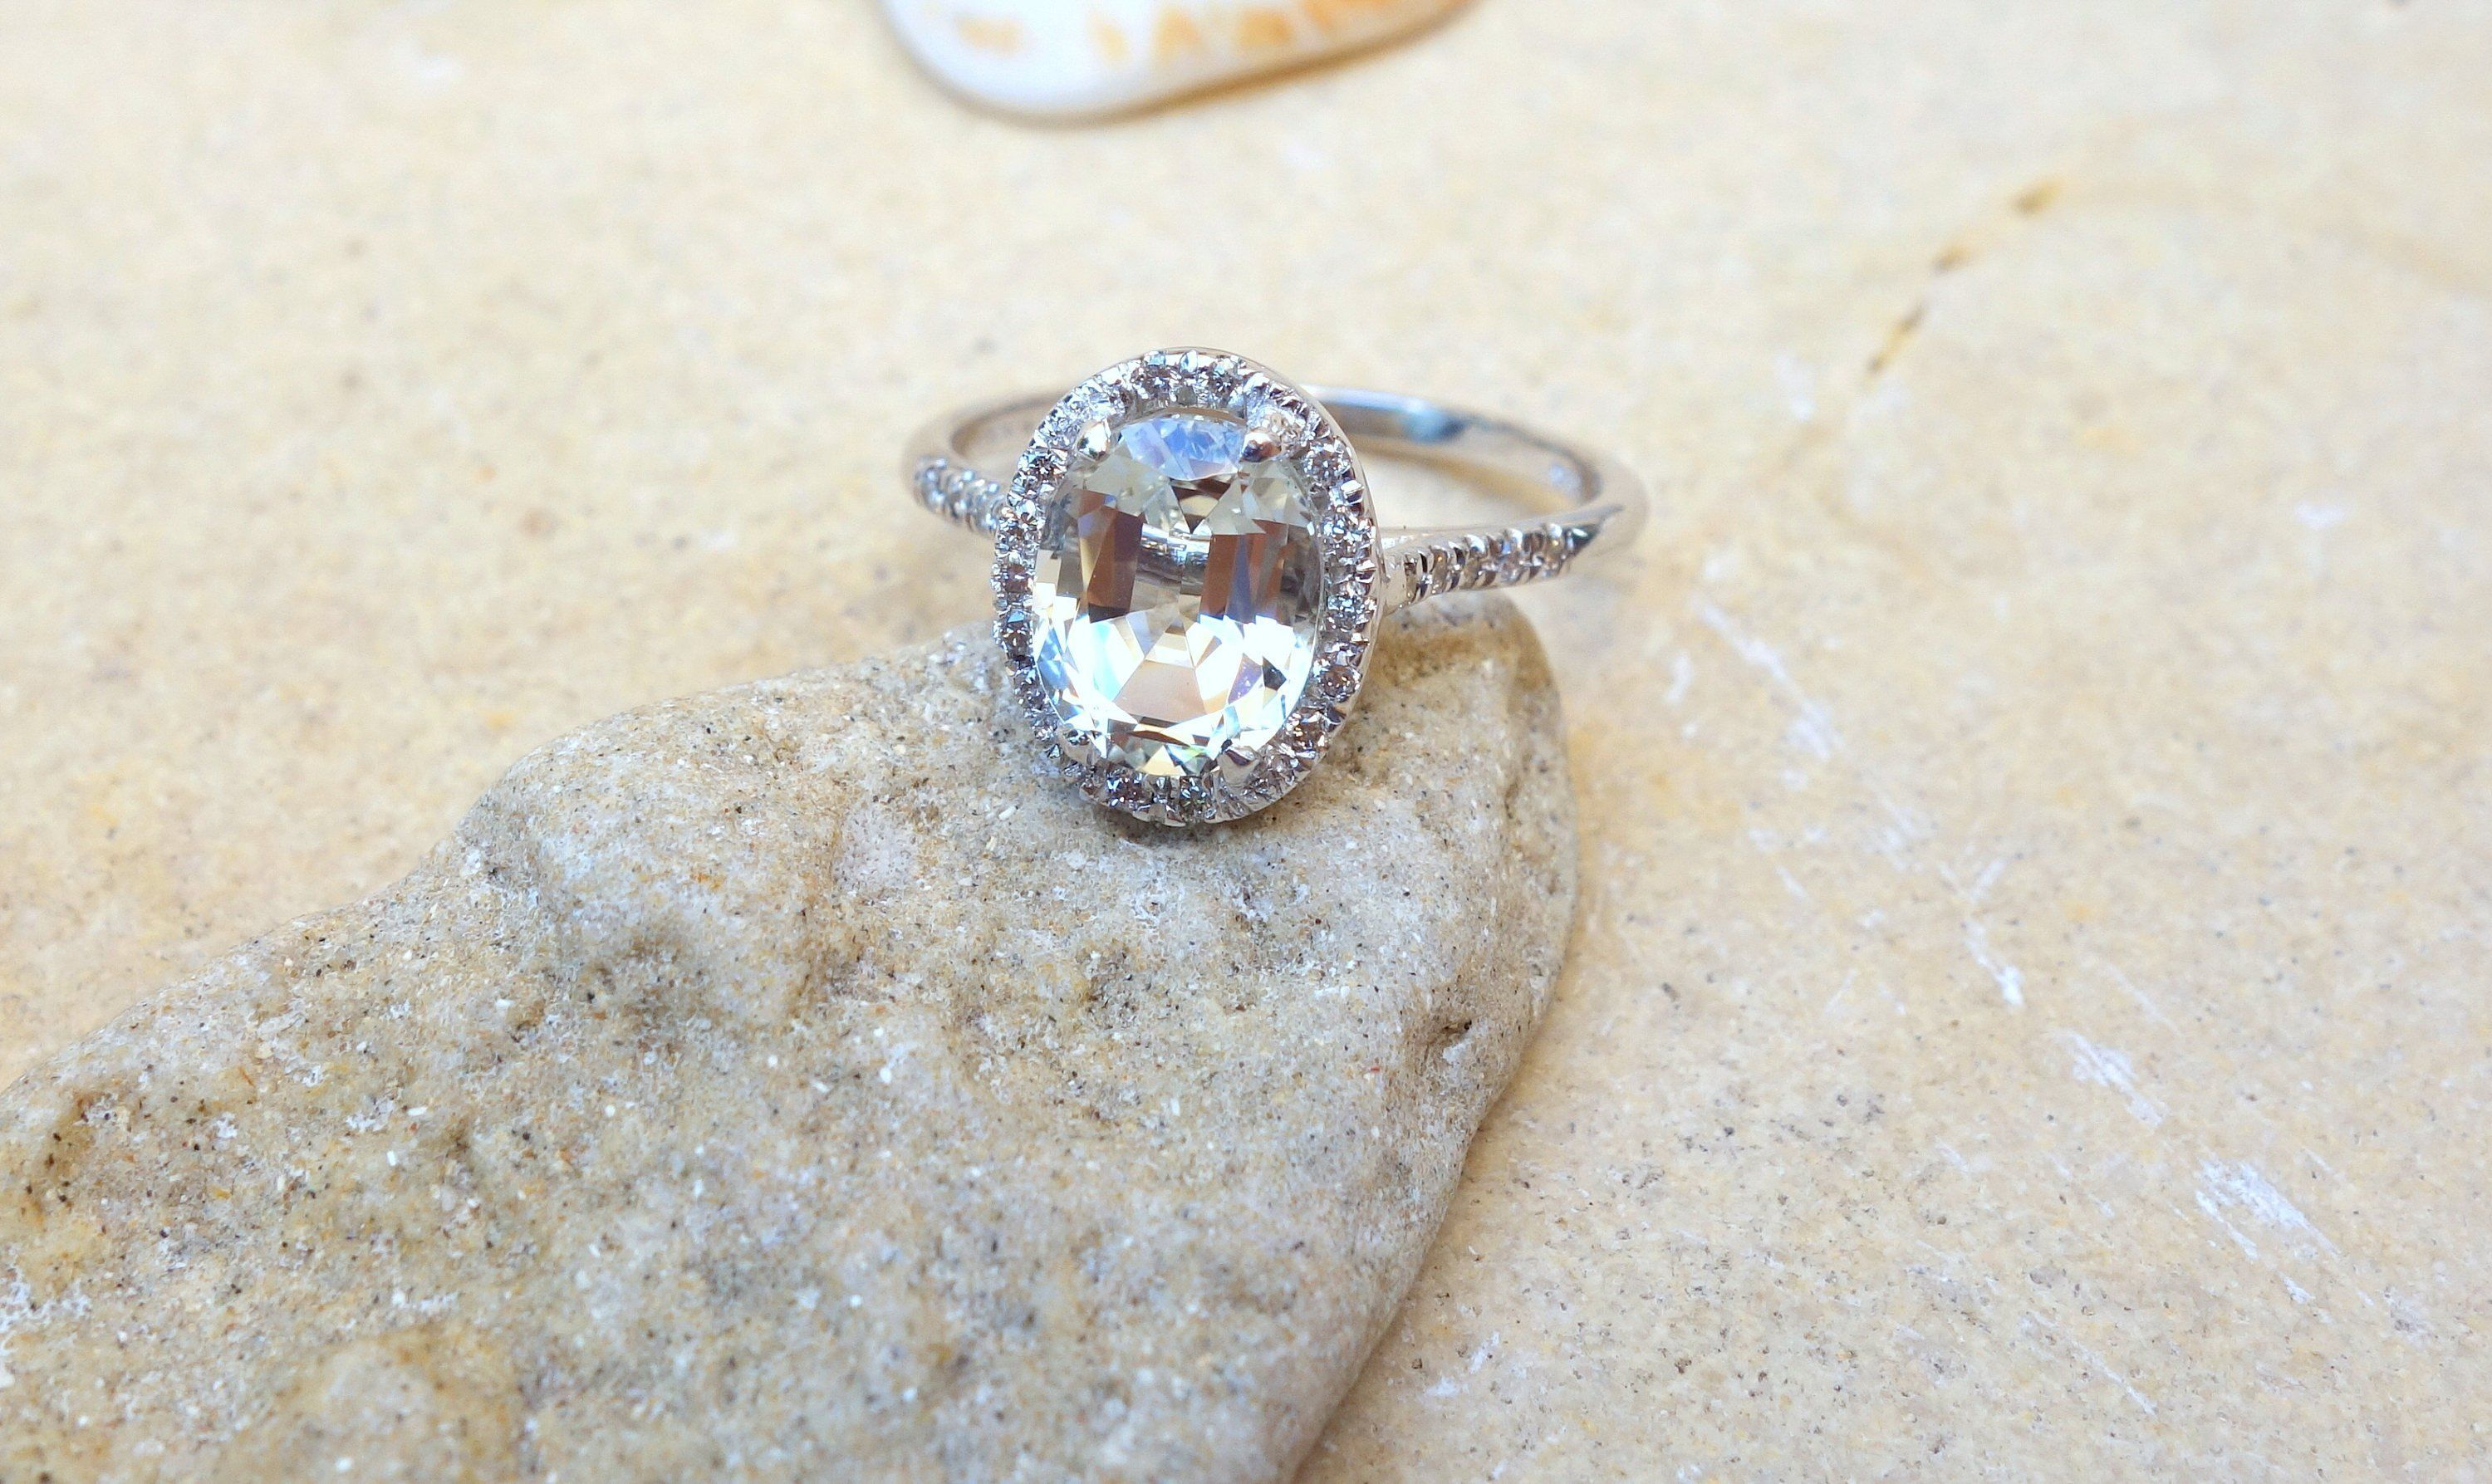 Halo diamond ring Engagement Ring Bridal Eternity Band Fine Jewelry Cocktail Ring Unique Unusual Solitaire Different Vintage yellow gold #Band #Bridal #Cocktail #Diamond #engagement #Eternity #Fine #Gold #Halo #jewelry #Ring #Solitaire #Unique #unusual #Vintage #yellow